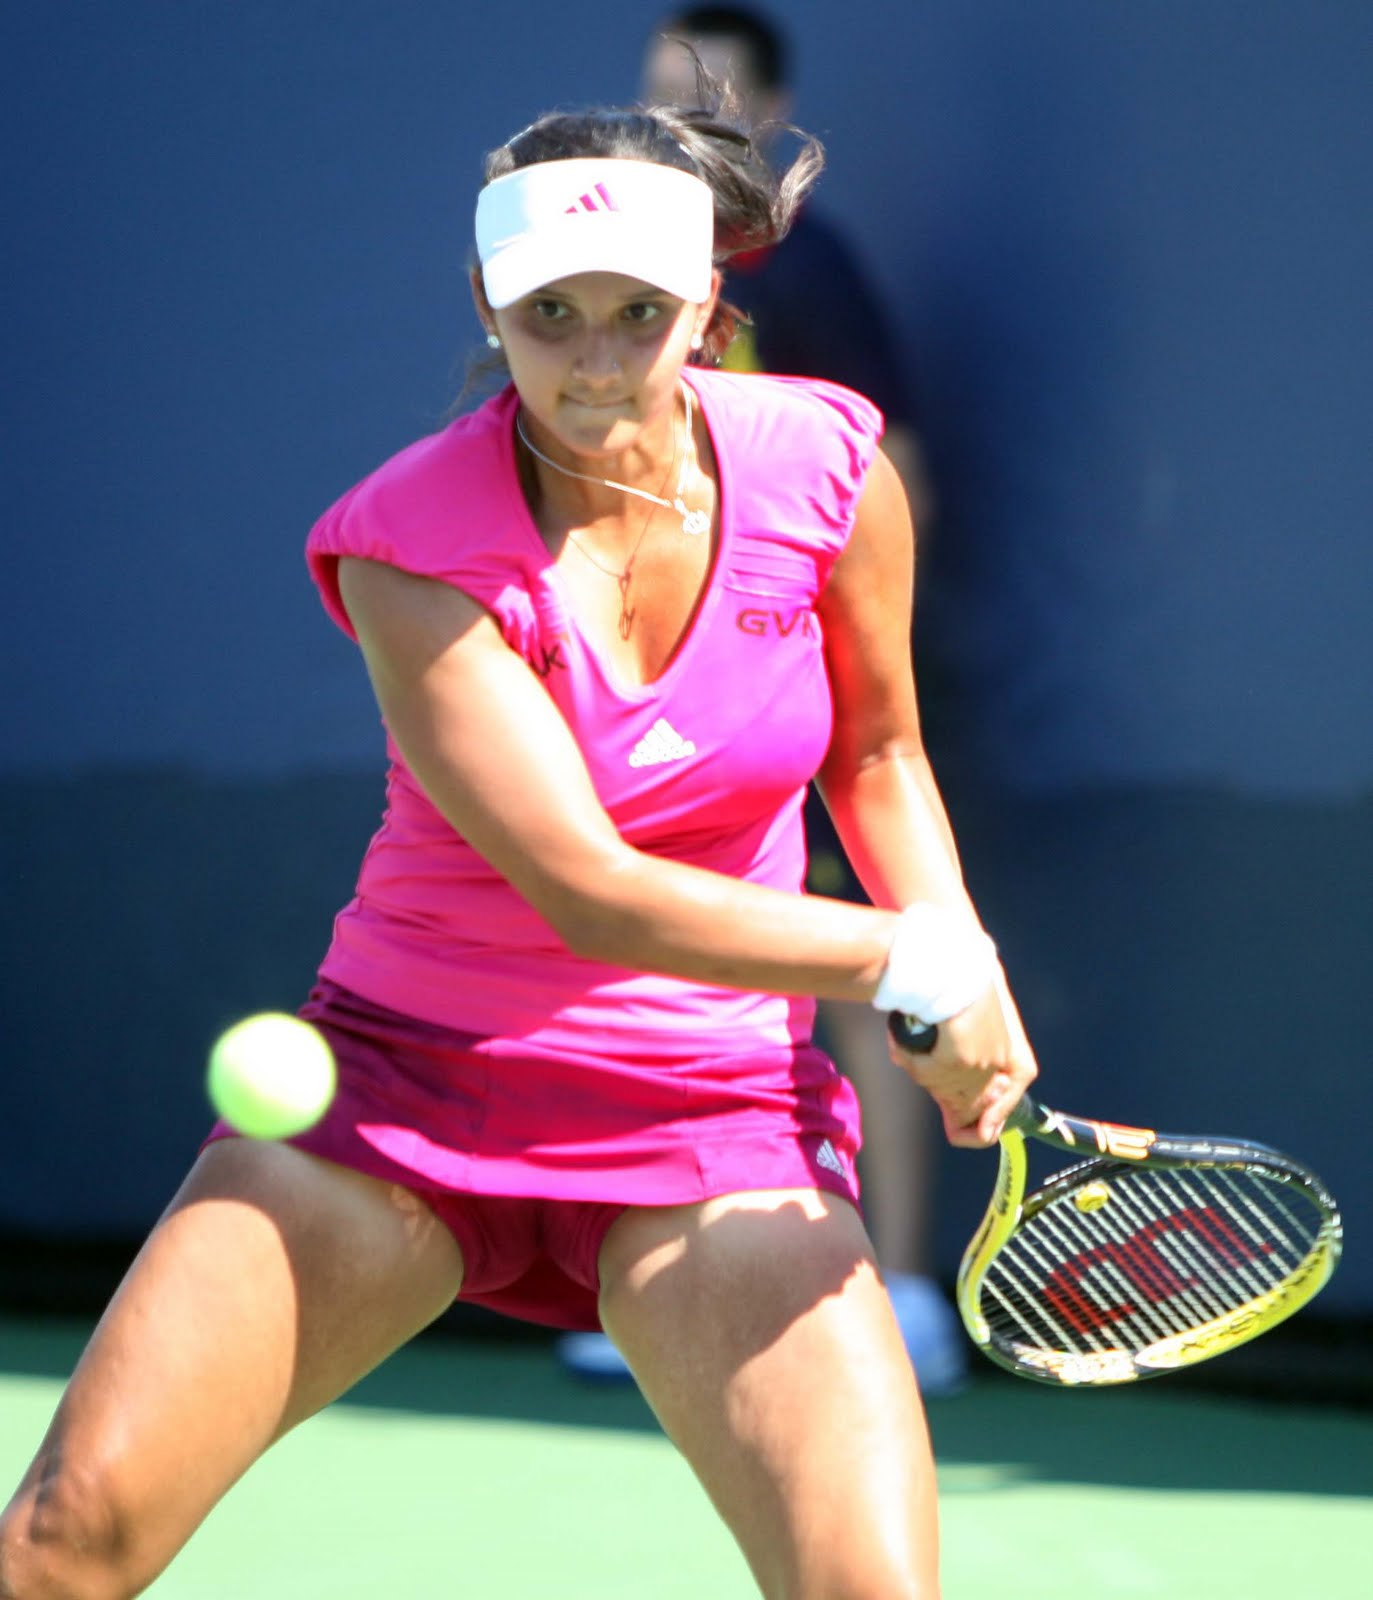 starbuzzonline com 2010 sania mirza is qualified to play for the us open tennis 2010